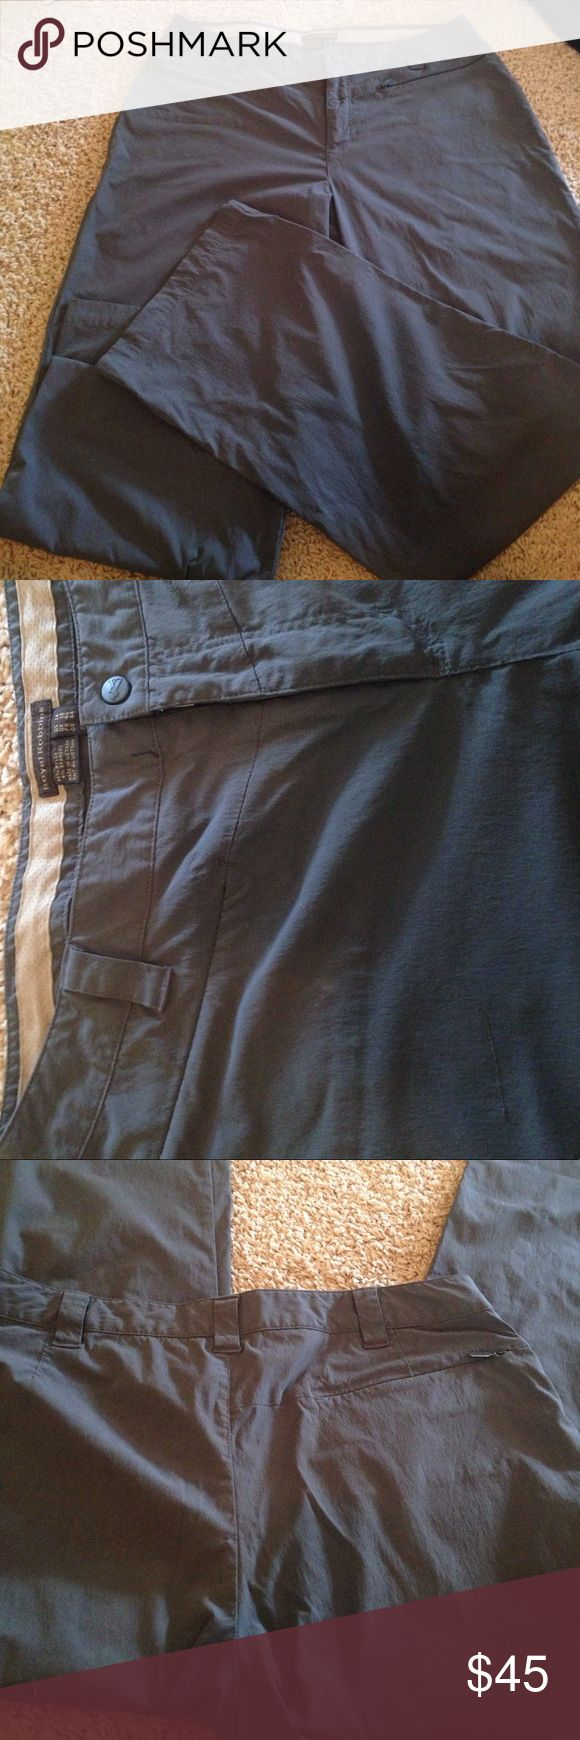 Outdoor pants Royal Robbins trucking pants, excellent details Royal Robbins Pants